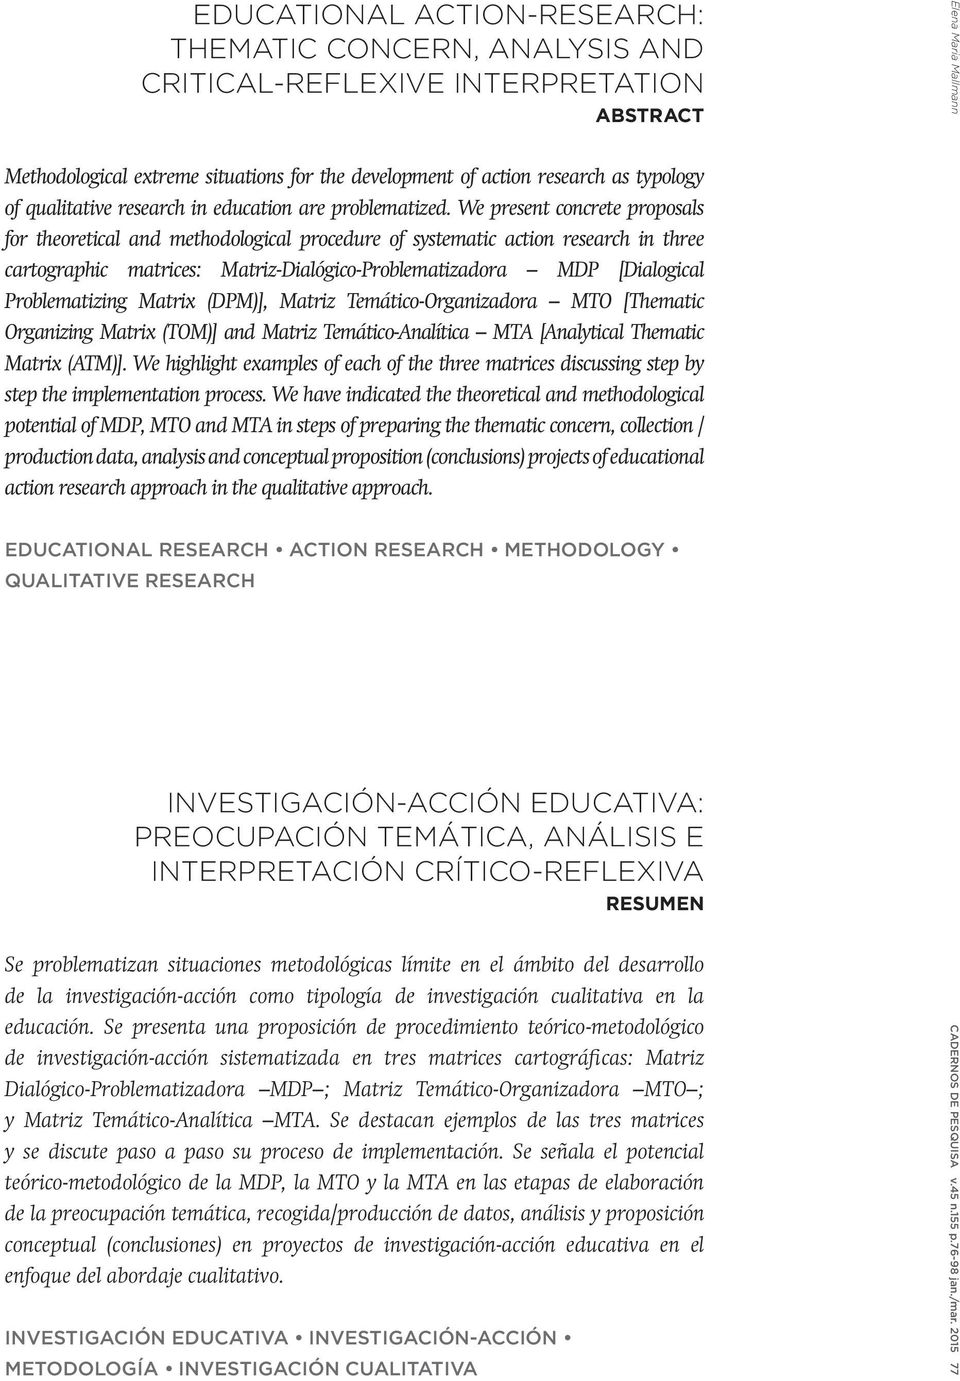 We present concrete proposals for theoretical and methodological procedure of systematic action research in three cartographic matrices: Matriz-Dialógico-Problematizadora MDP [Dialogical